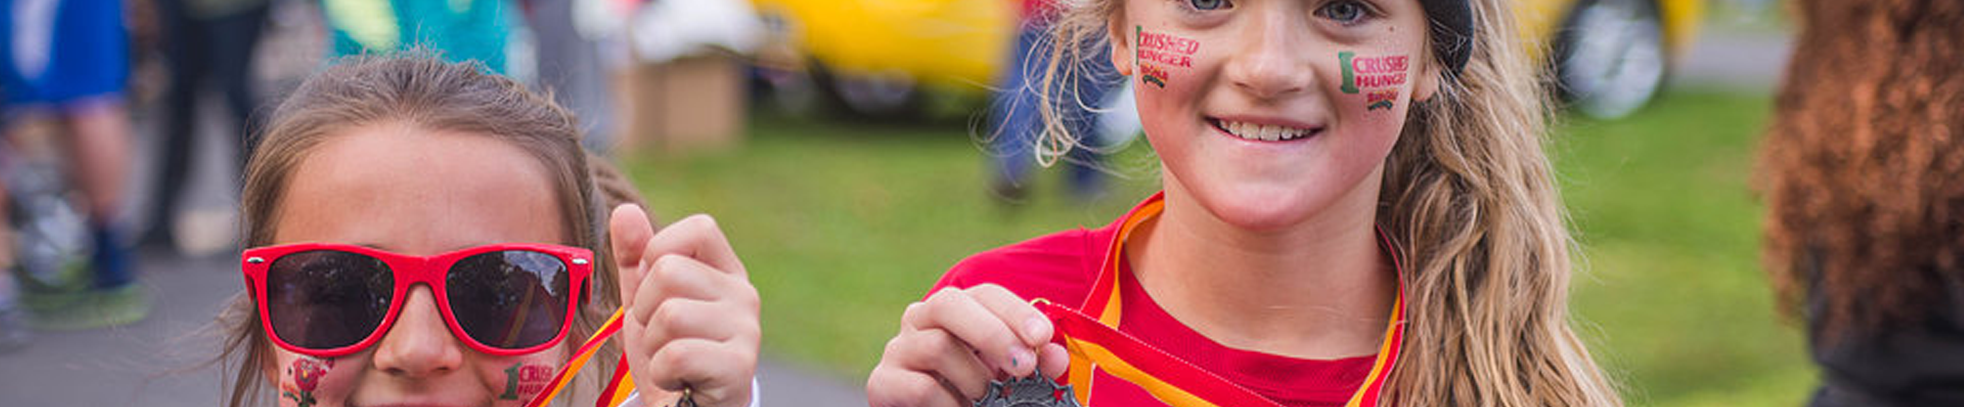 Girls show off medals at Crush Hunger